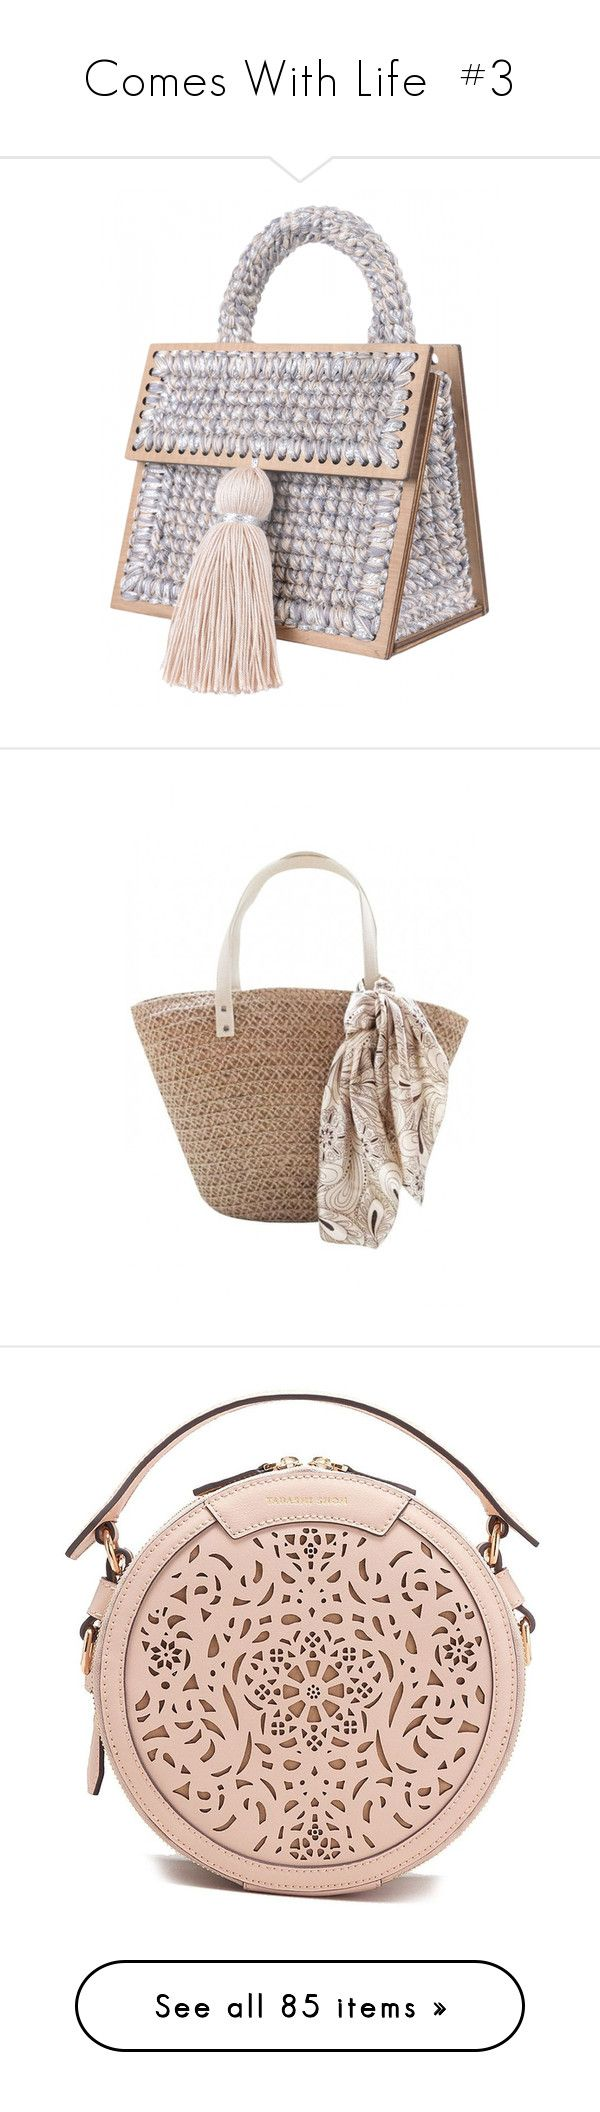 """""""Comes With Life  #3"""" by belenloperfido ❤ liked on Polyvore featuring bags, handbags, beige bag, hand woven bags, hand bags, tassel purse, purse bag, lucluc, beach bag and purses"""